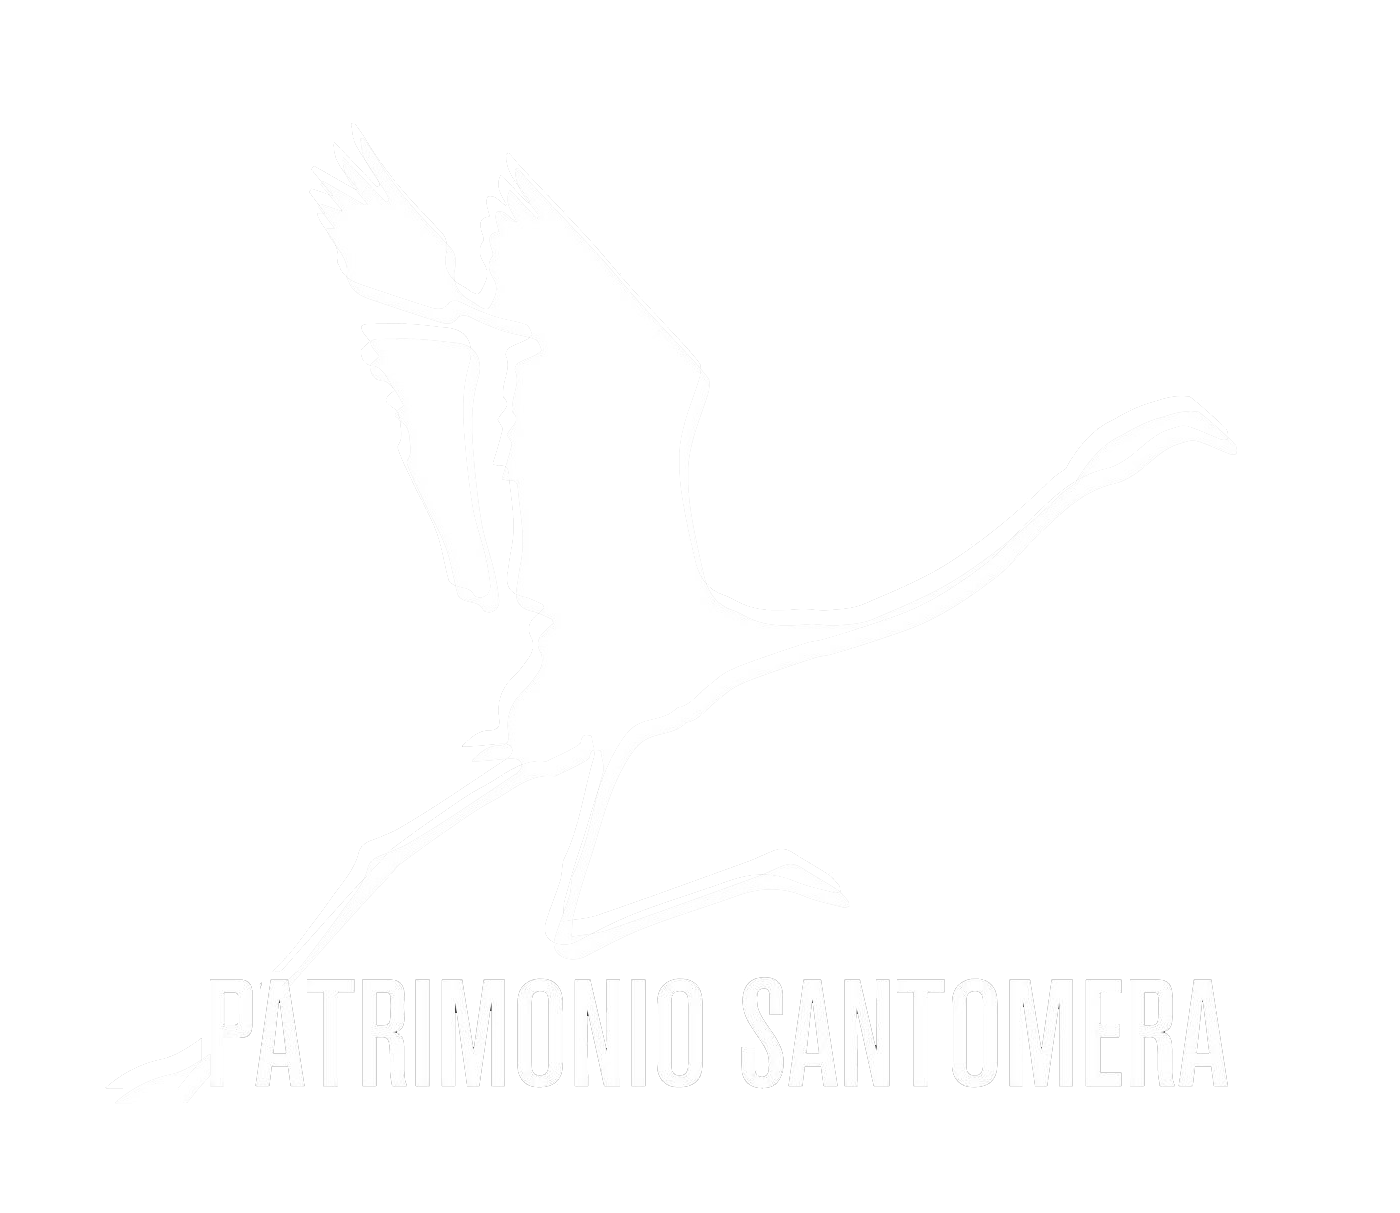 magic_logo_patrimonio